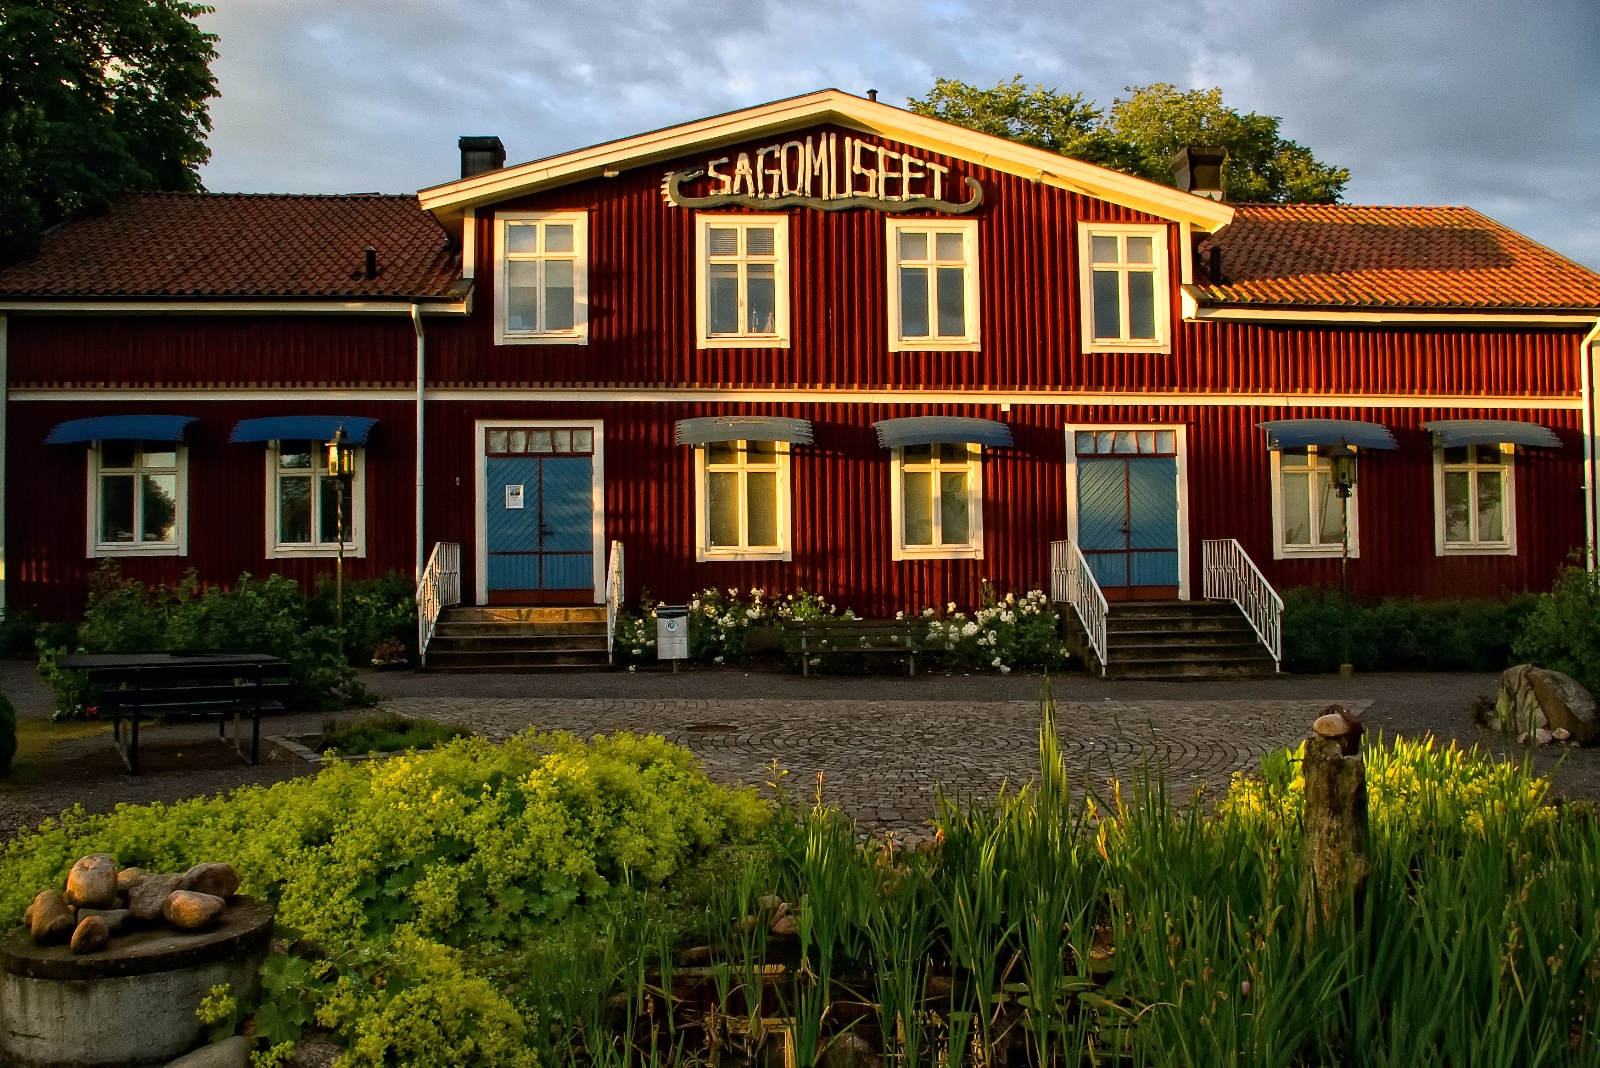 Sagomuseet Ljungby: in the heart of the Land of Legends